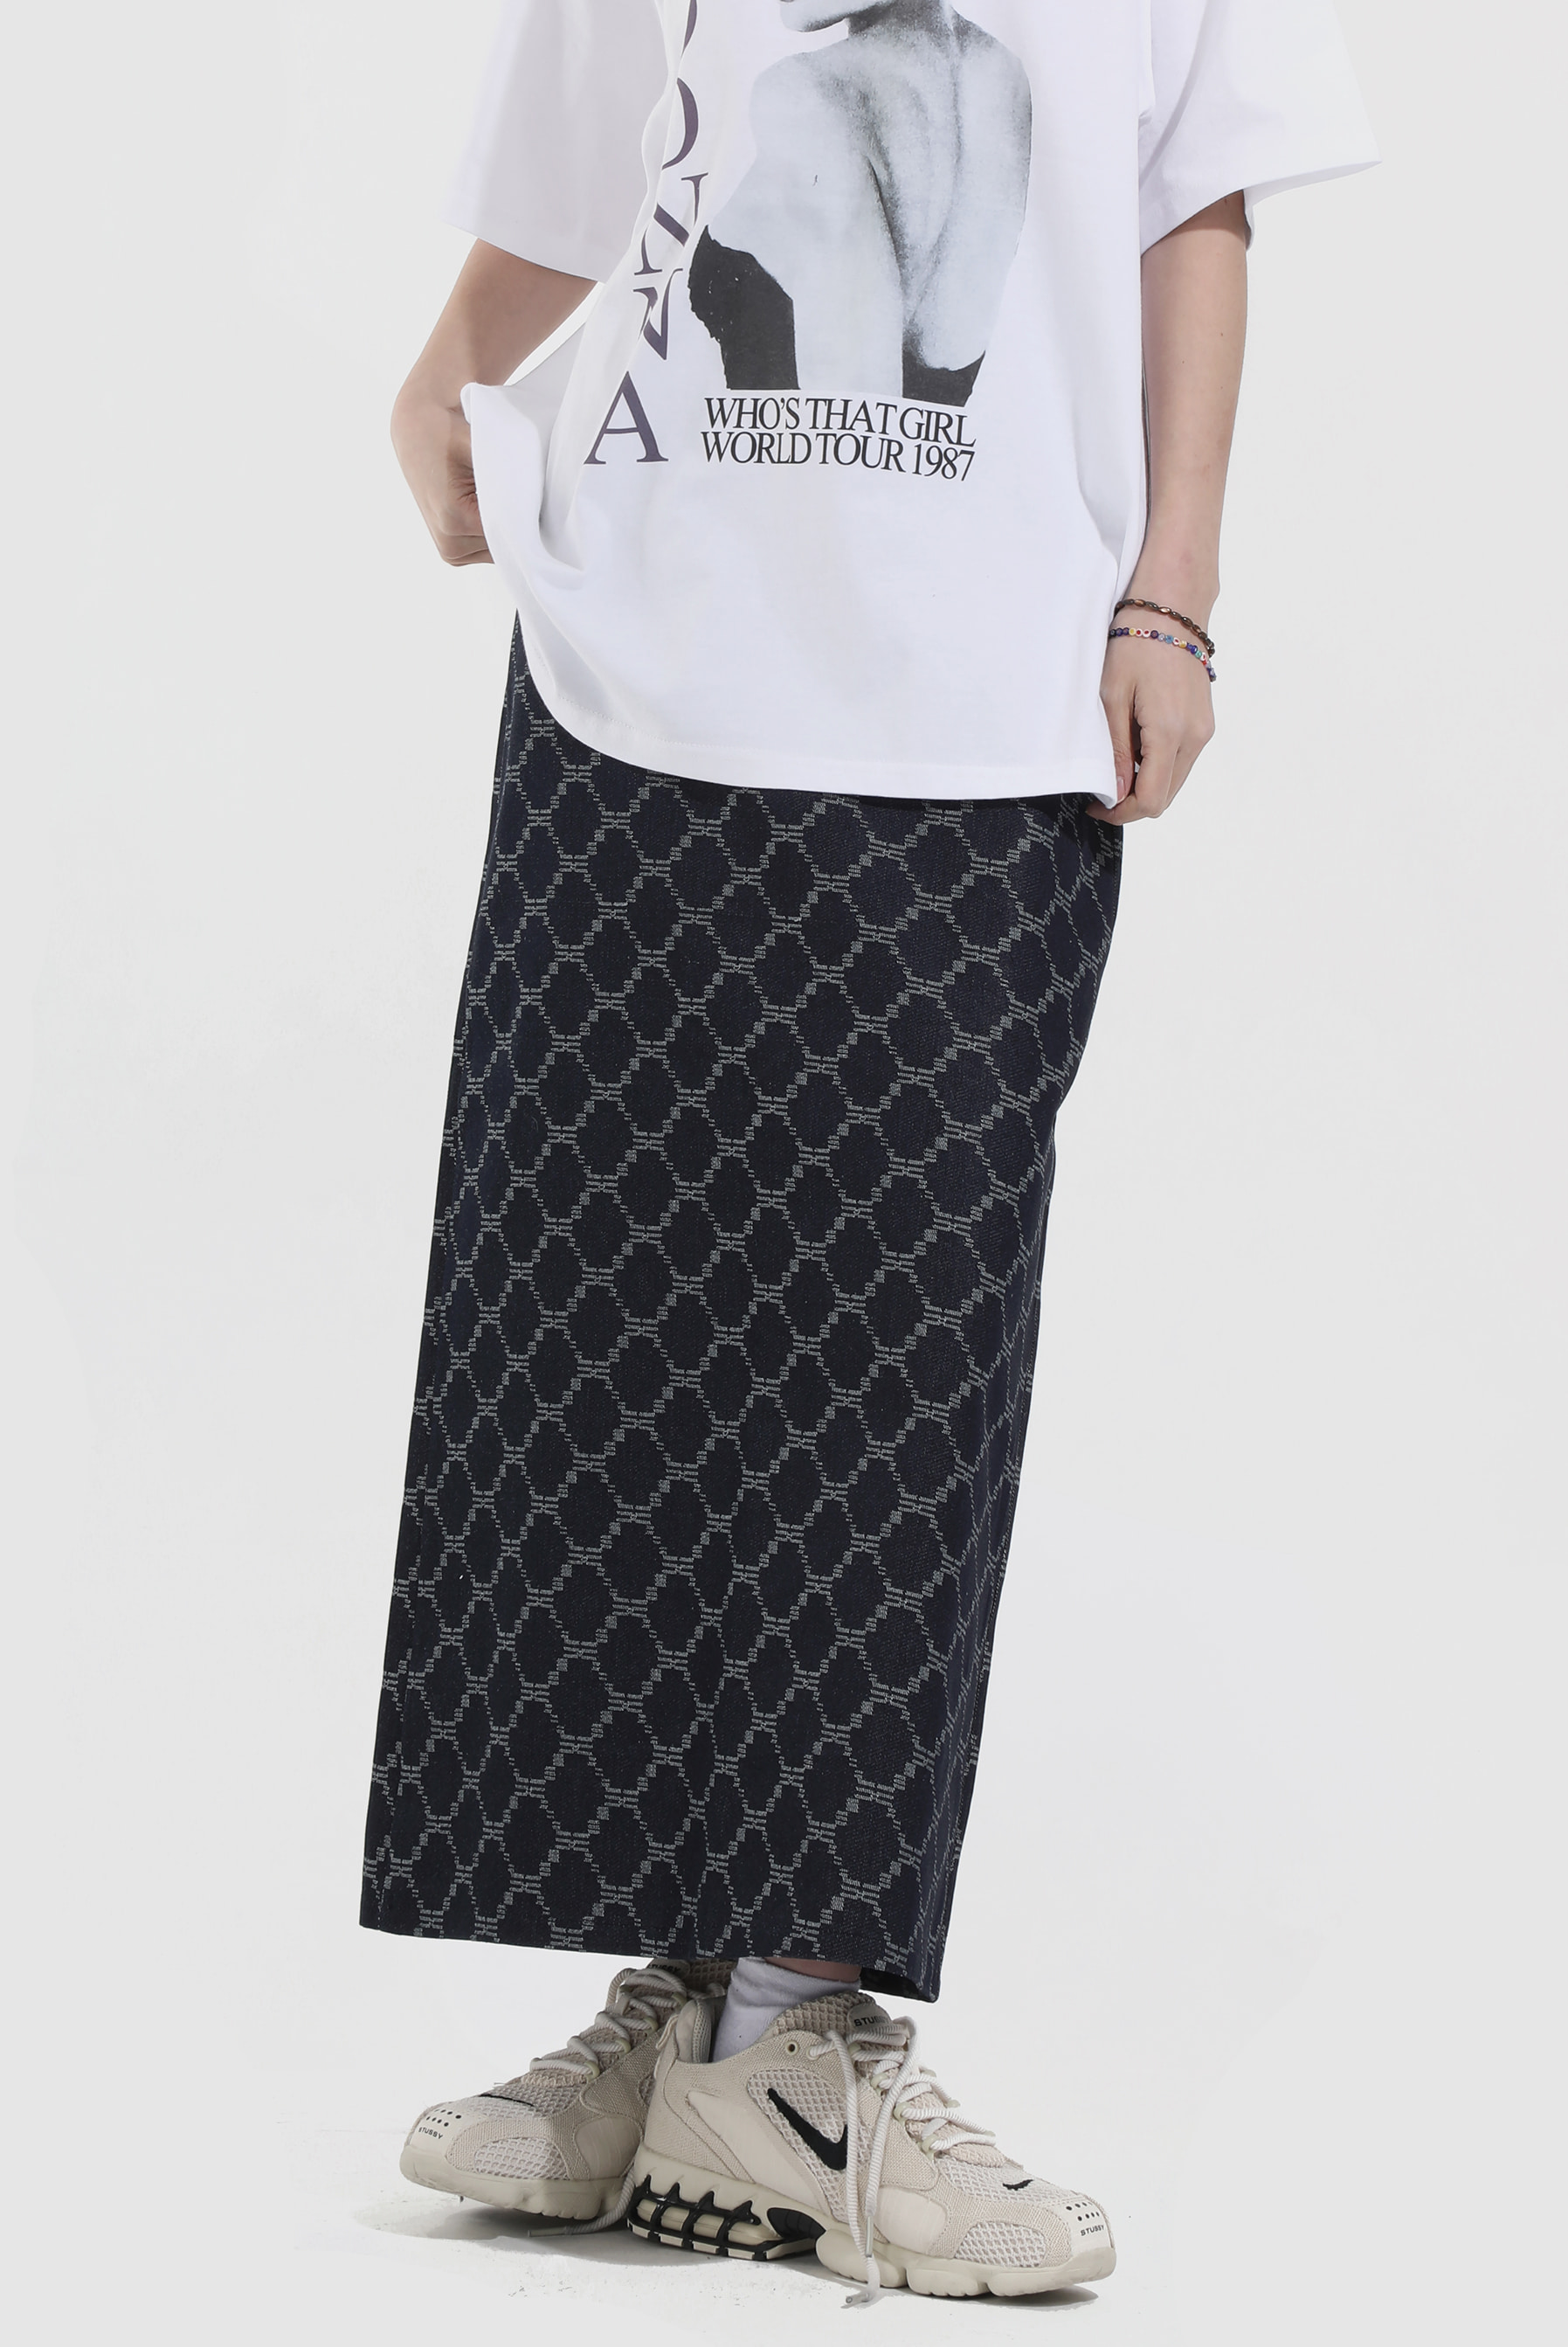 Jacquard_Denim Long zip Skirt